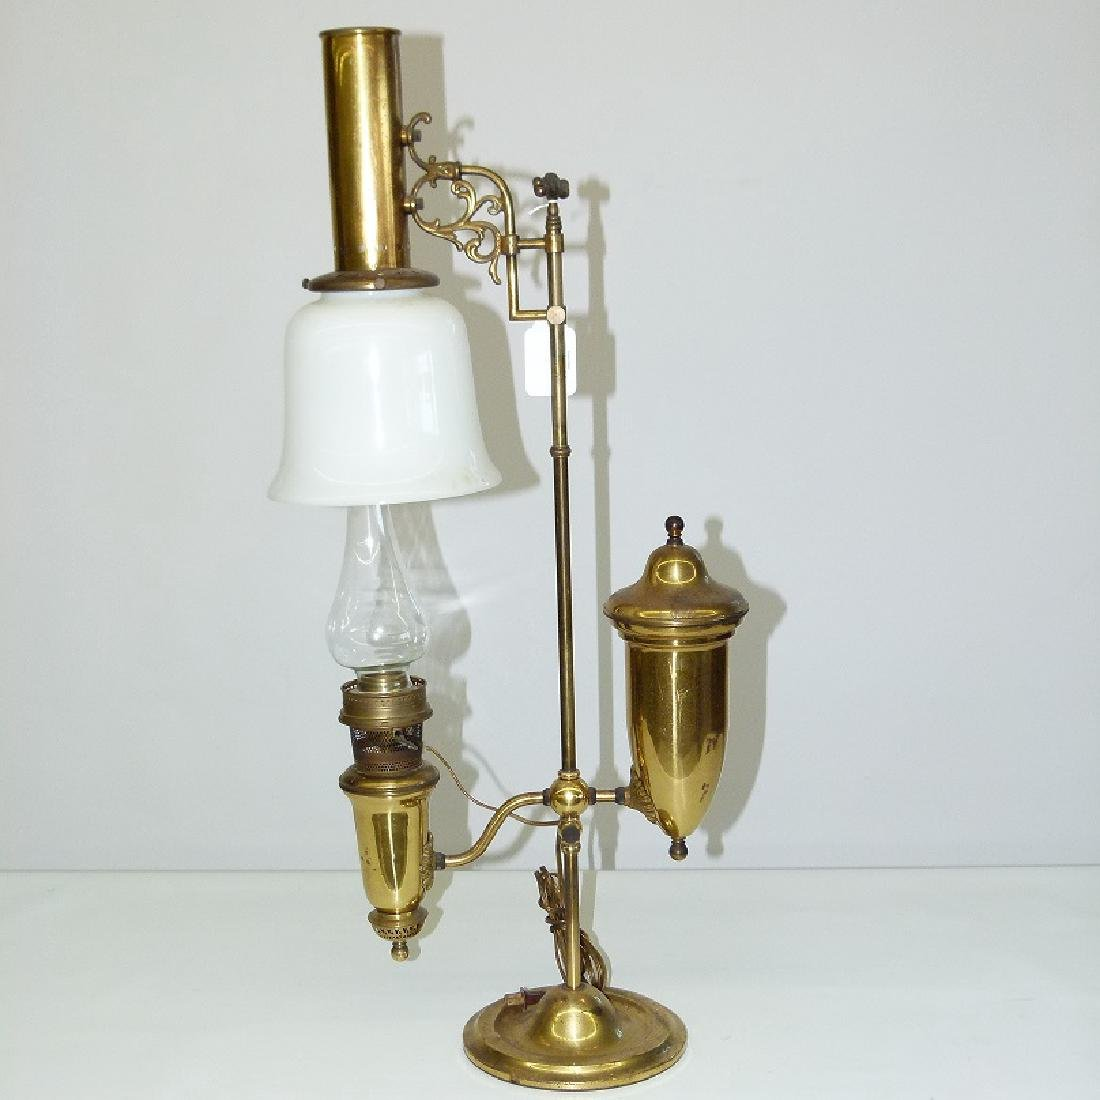 VINTAGE BRASS STEAM PUNK STUDENTS LAMP